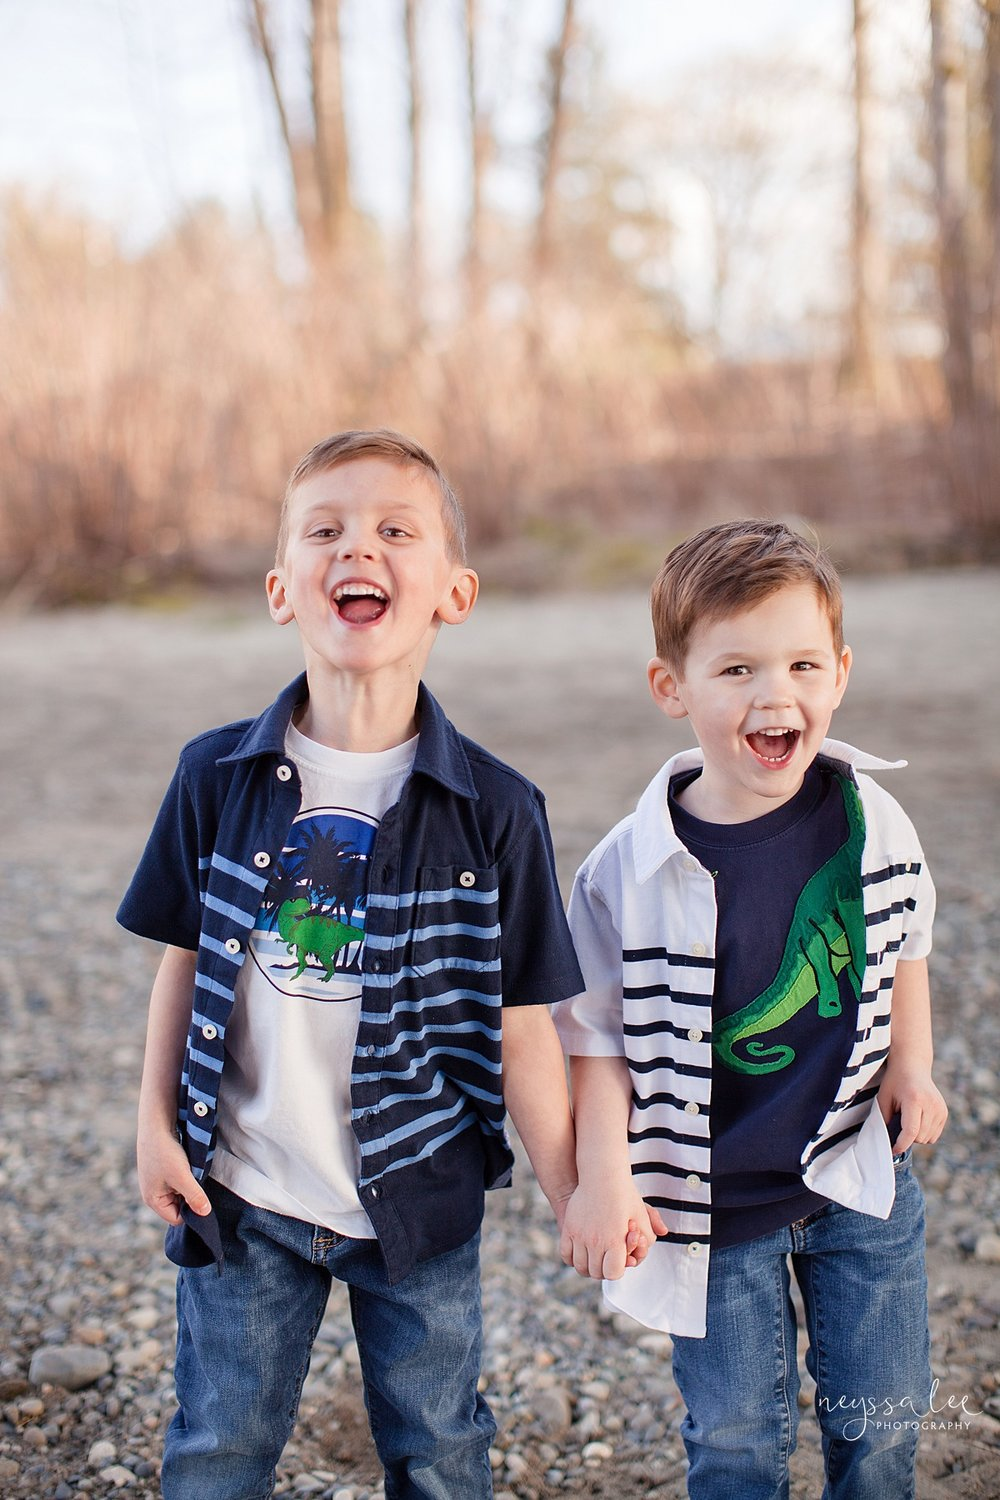 Family Photos by the River at Sunset, Neyssa Lee Photography, Snoqualmie Family Photography, Brothers laughing together